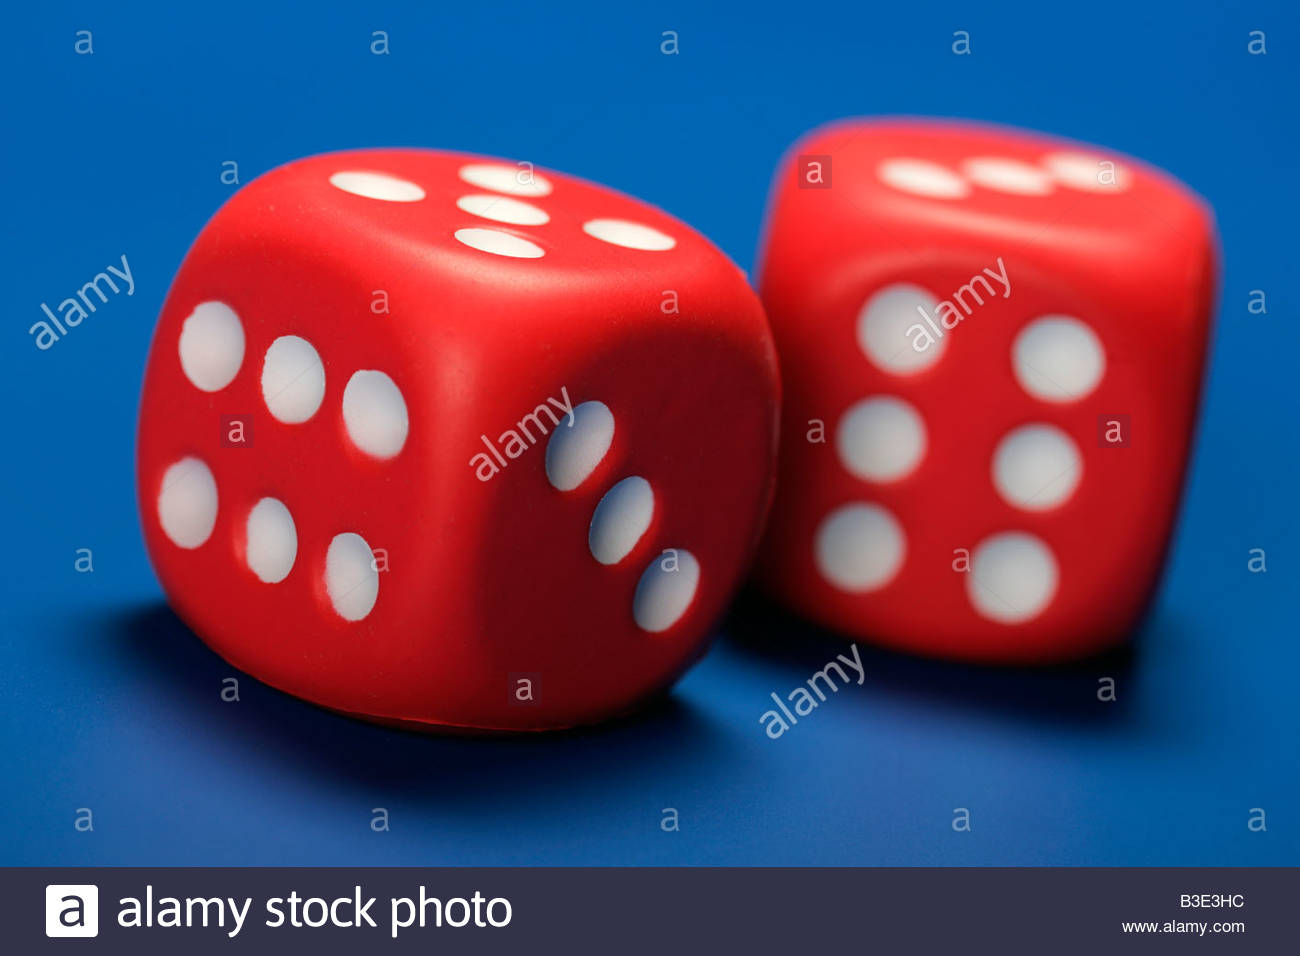 two red dice blue background gaming gambling bet casino plaything 1300x956